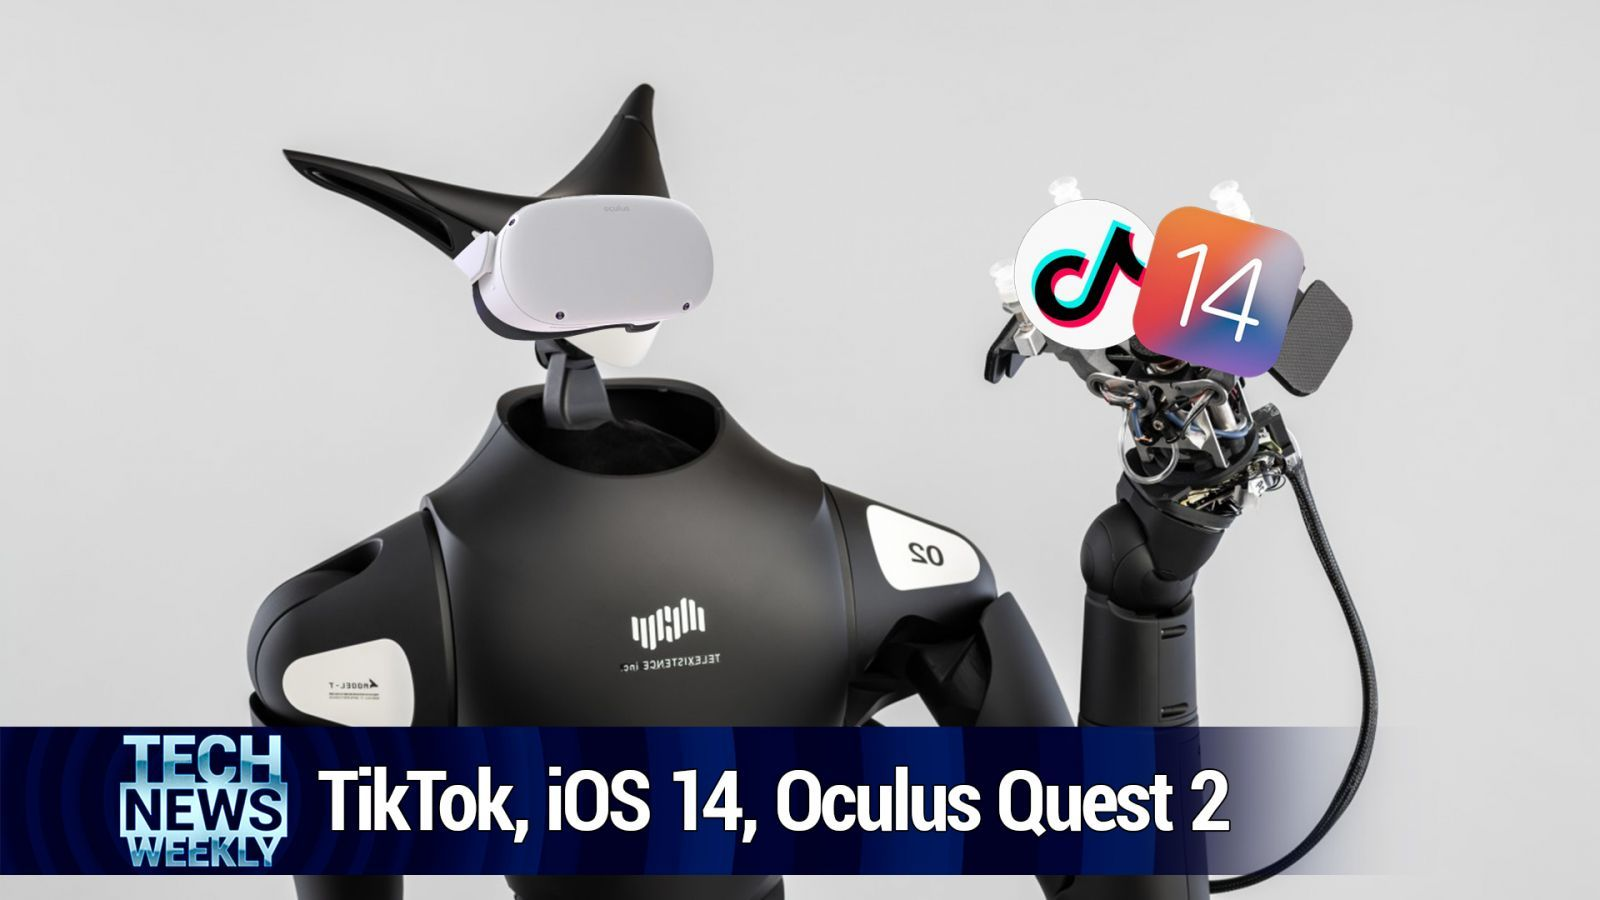 TNW 151: Facebook's VR Quest - TikTok, iOS 14, and Oculus Quest 2 & PlayStation